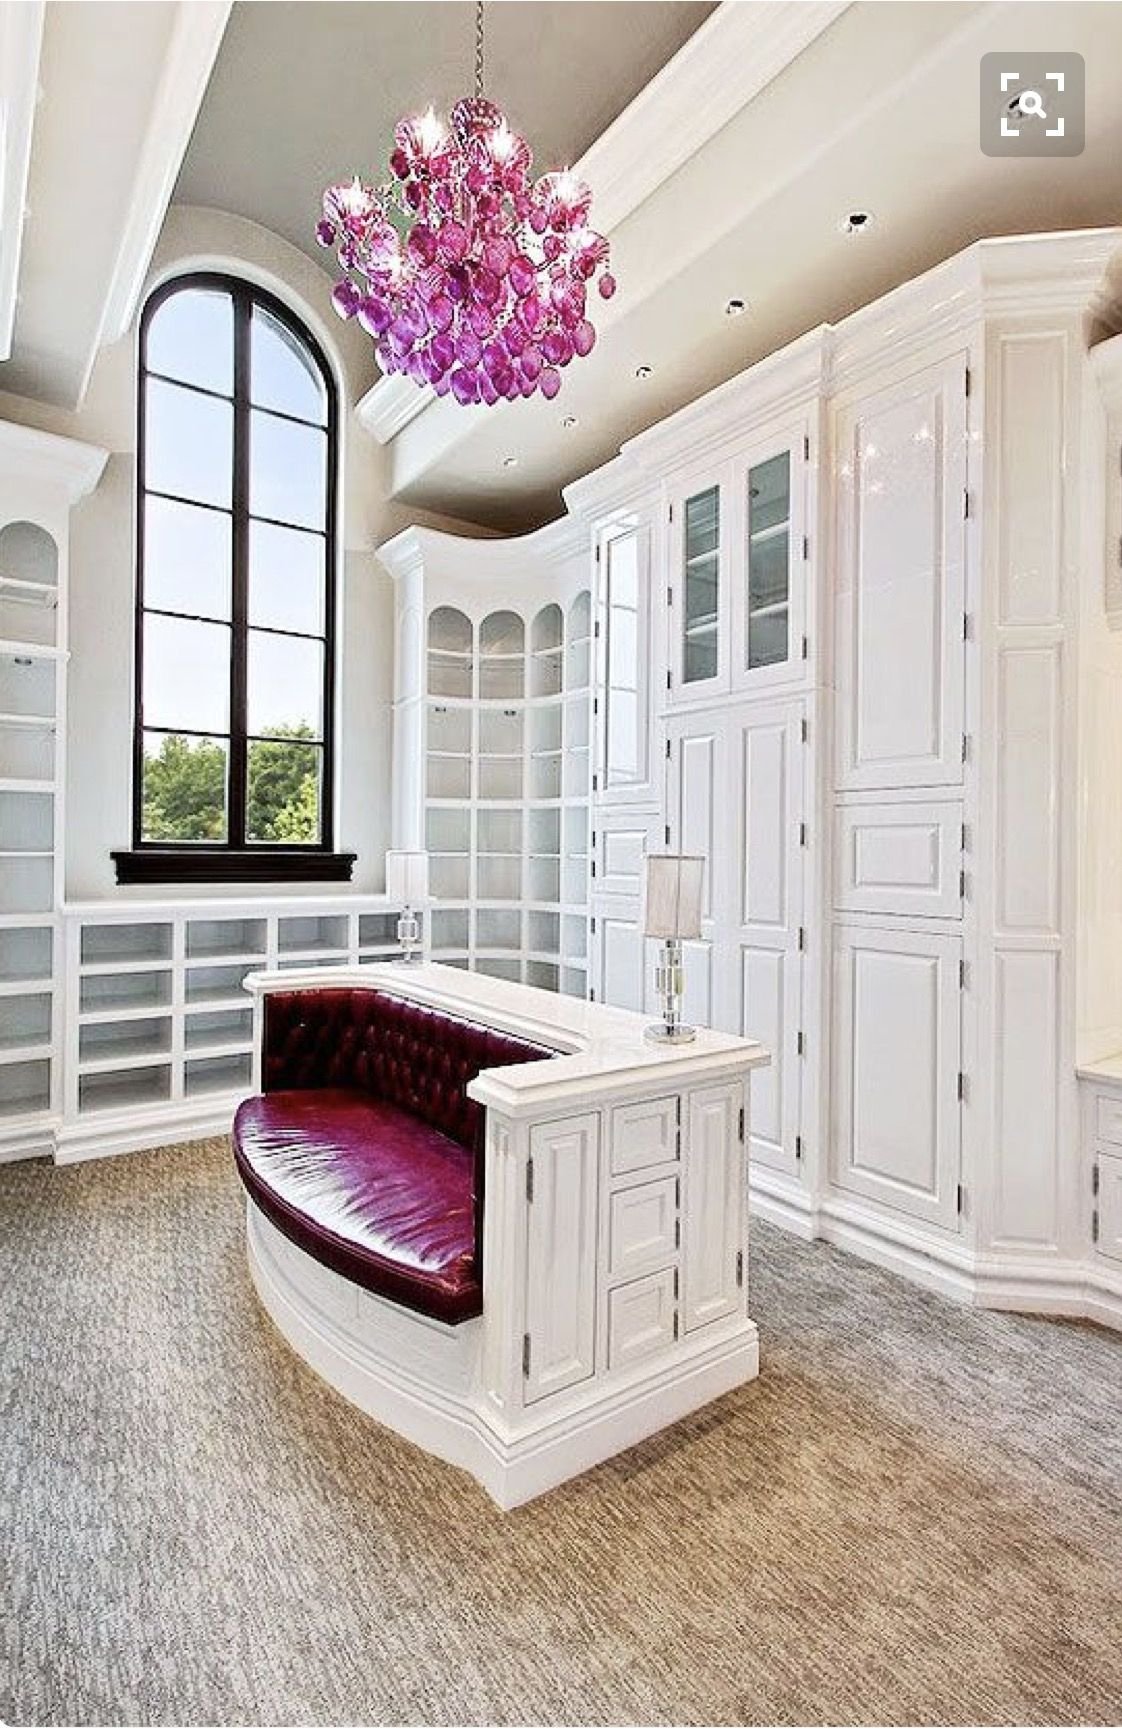 Pin by Charles Joe on Ideas for my home | Pinterest | Dressing room ...